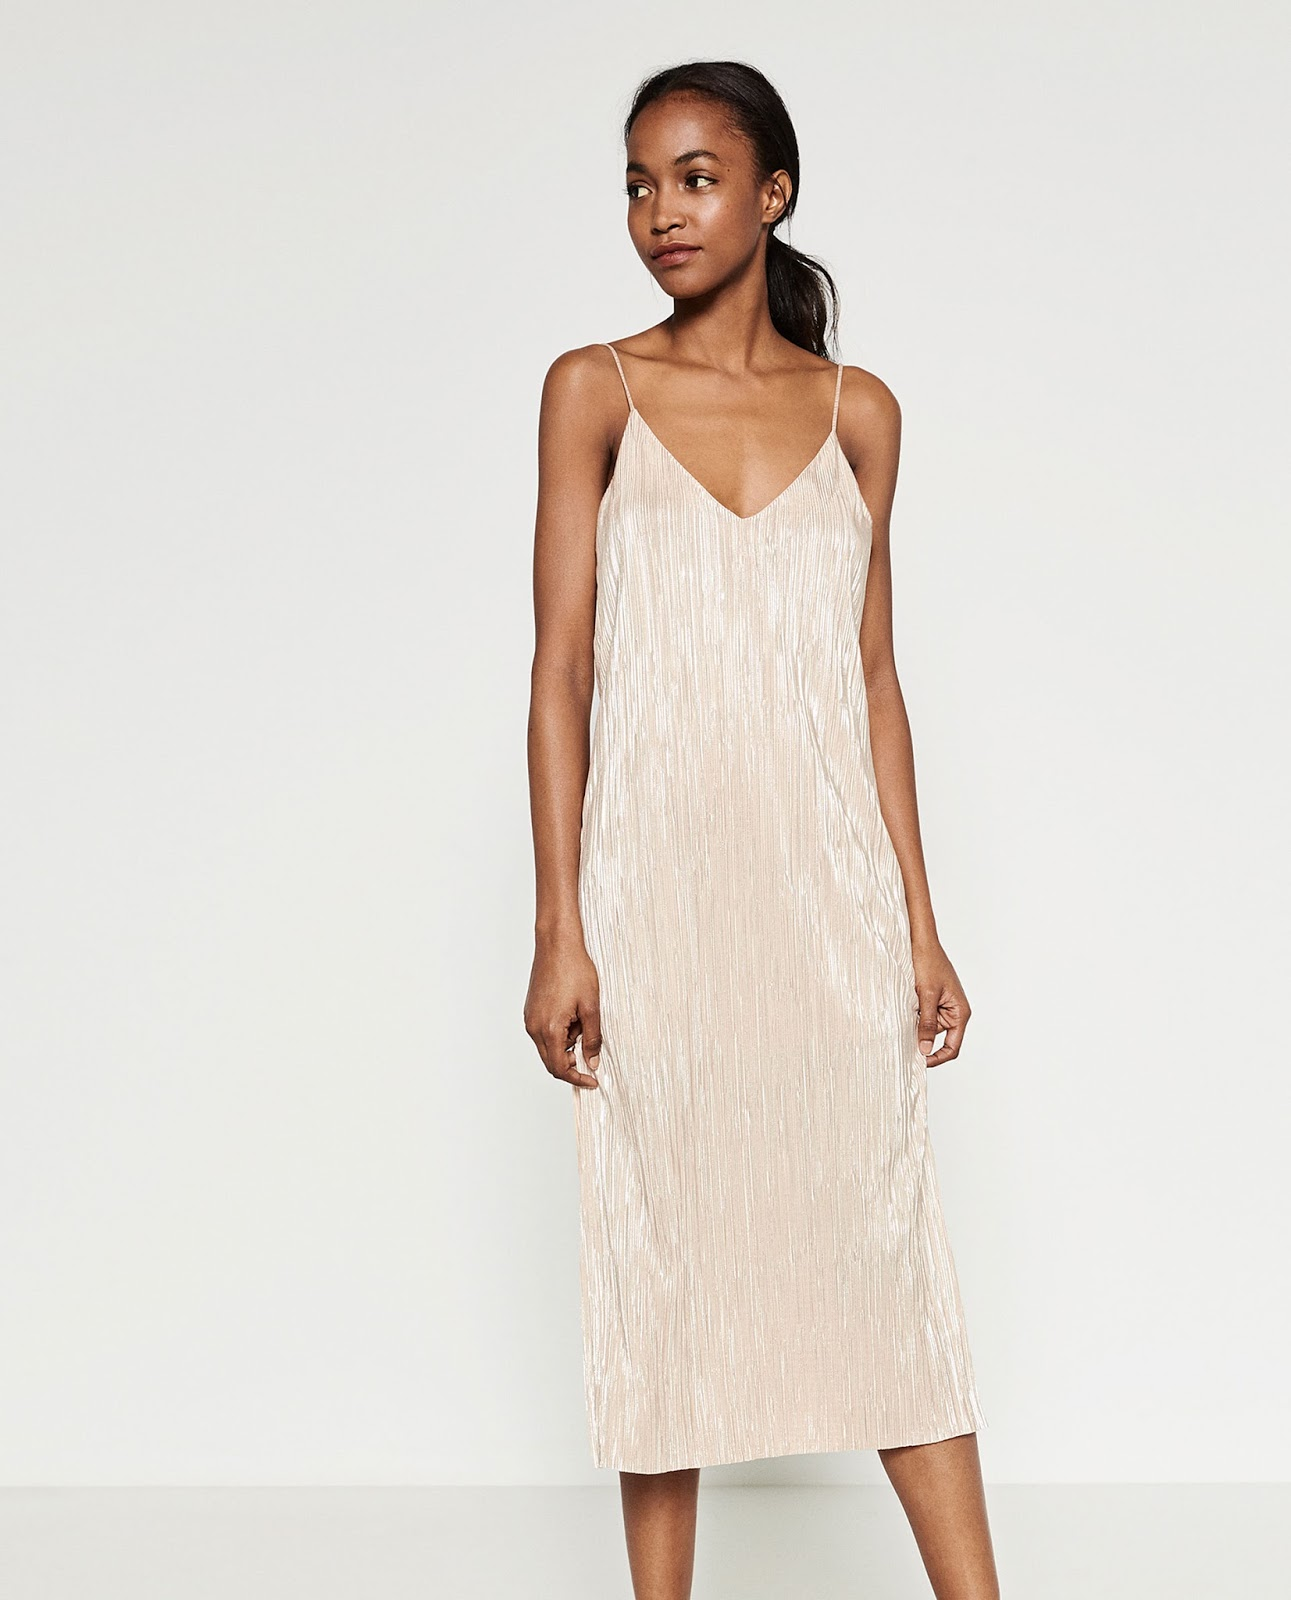 90s style long metallic slip dress from Zara